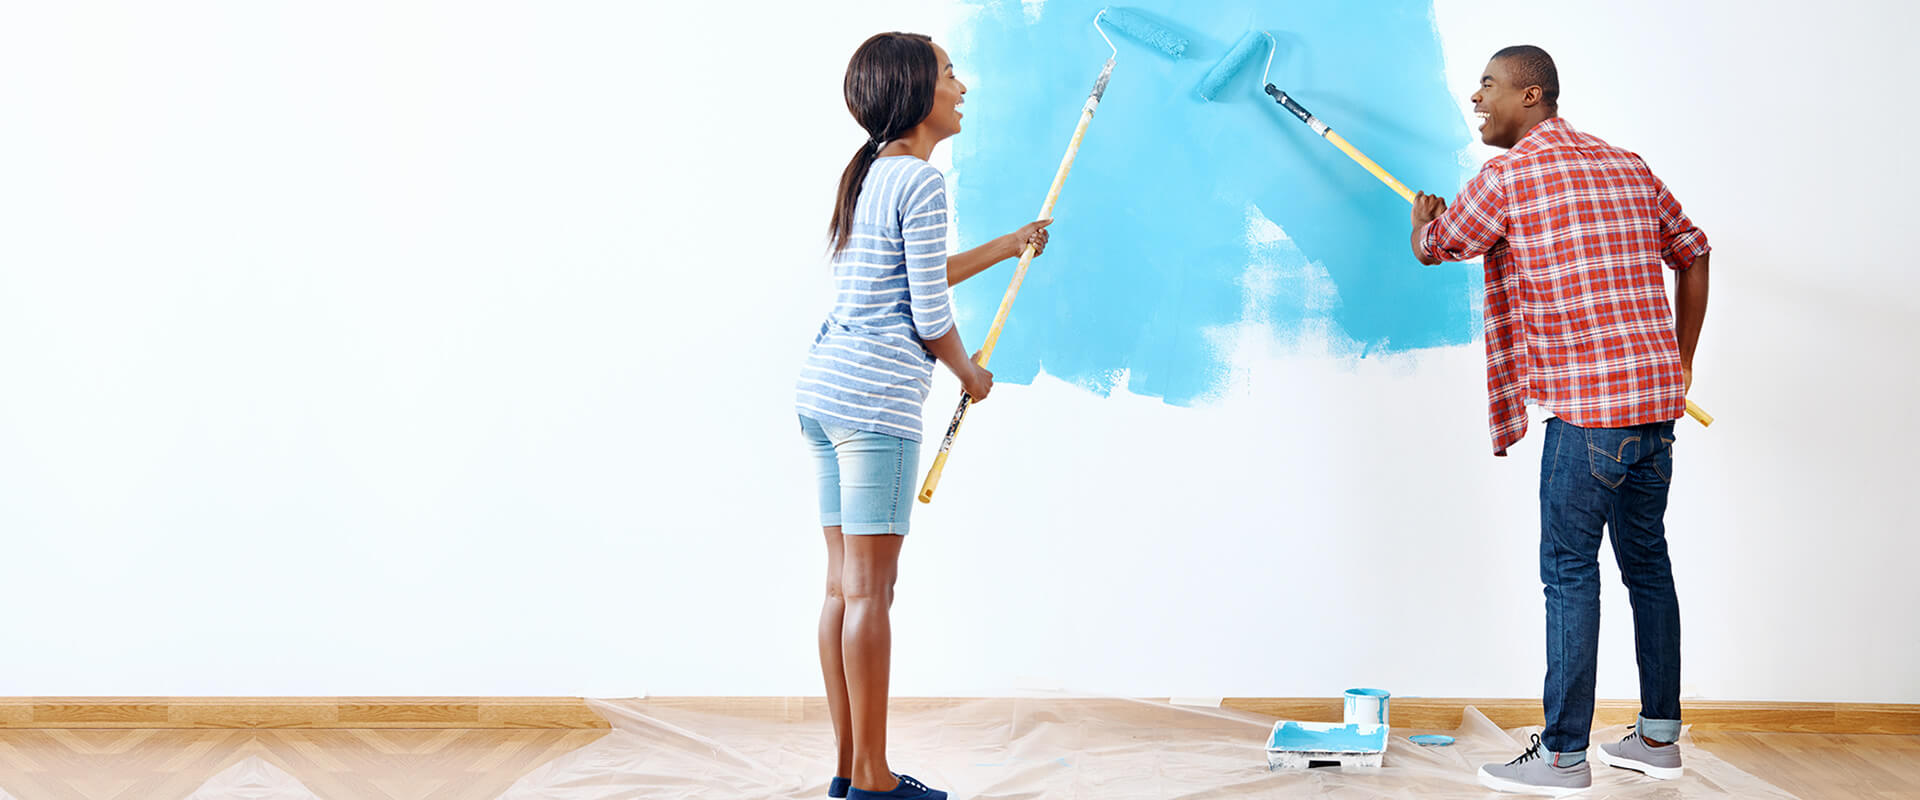 Painting is Hard by Mortgages Shouldn't Be